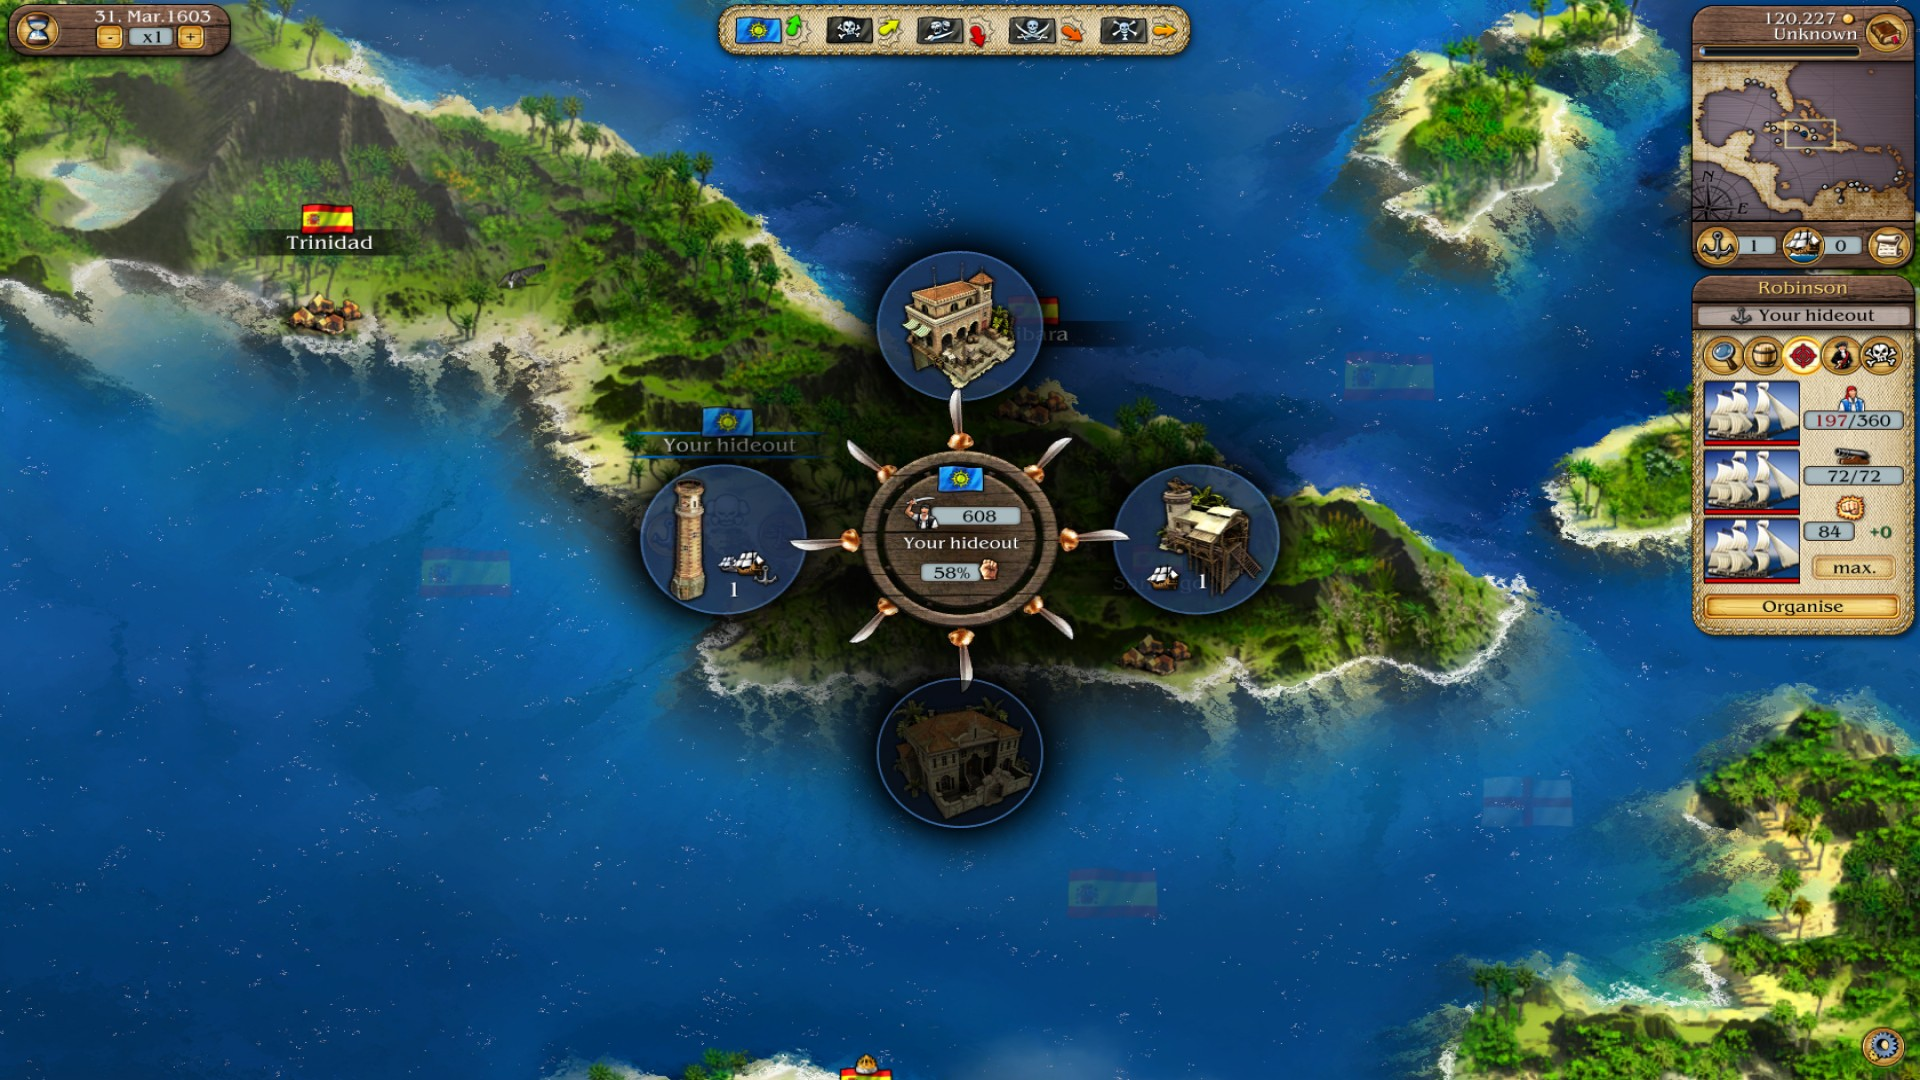 Port Royale 3: Dawn of Pirates DLC screenshot